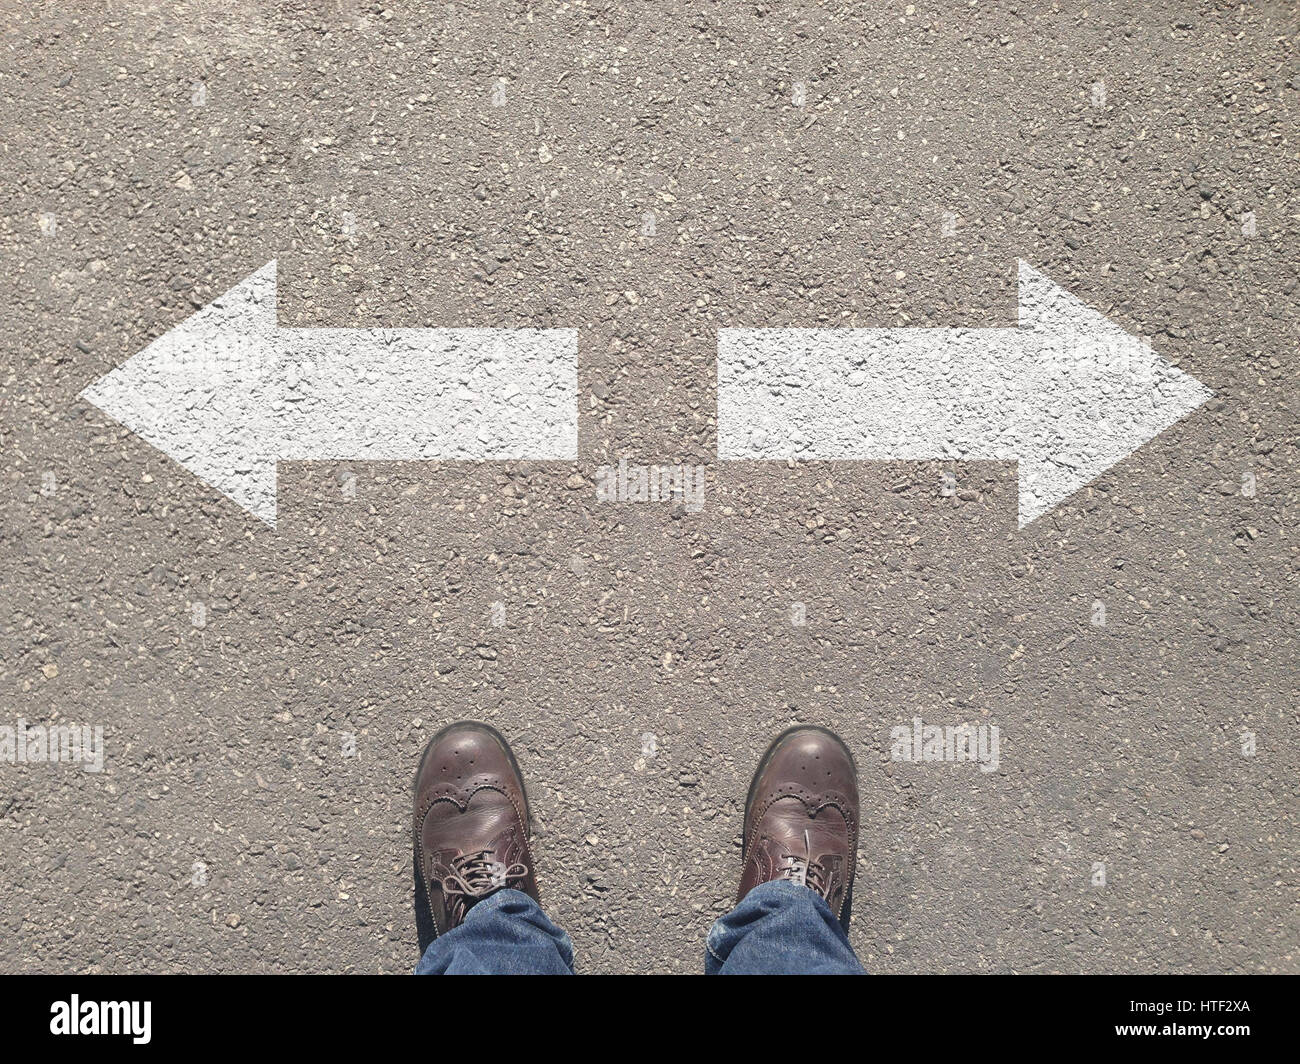 standing at the crossroad making decision which way to go - easy or hard - Stock Image